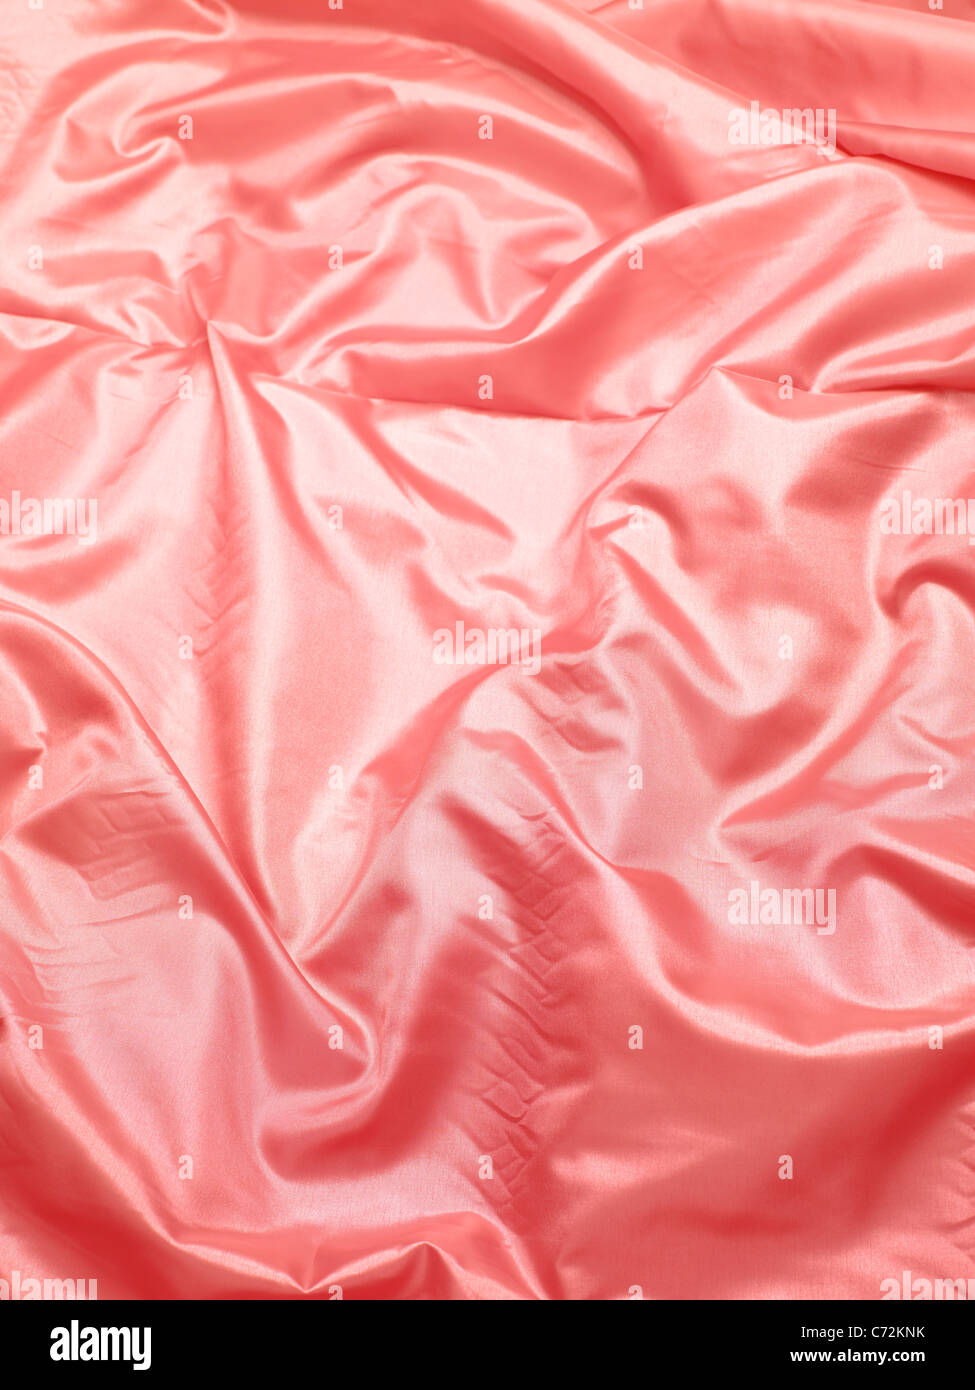 Pink silk bed sheet - Stock Image